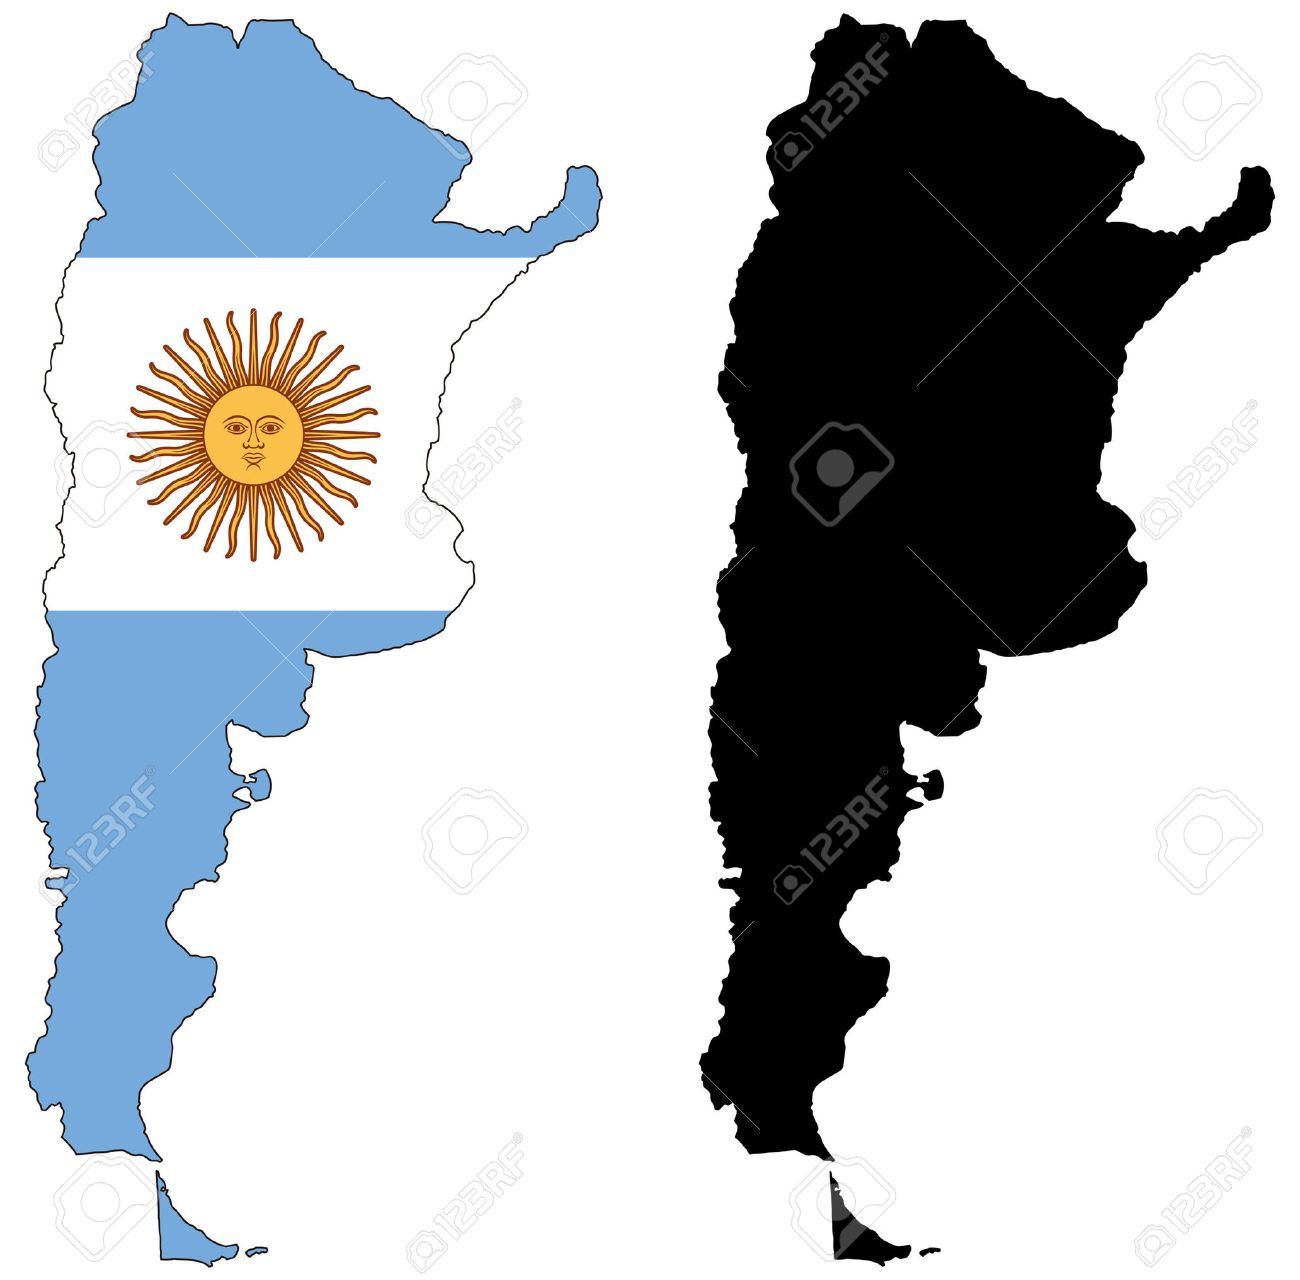 Vector Map And Flag Of Argentina Royalty Free Cliparts Vectors - Argentina map vector free